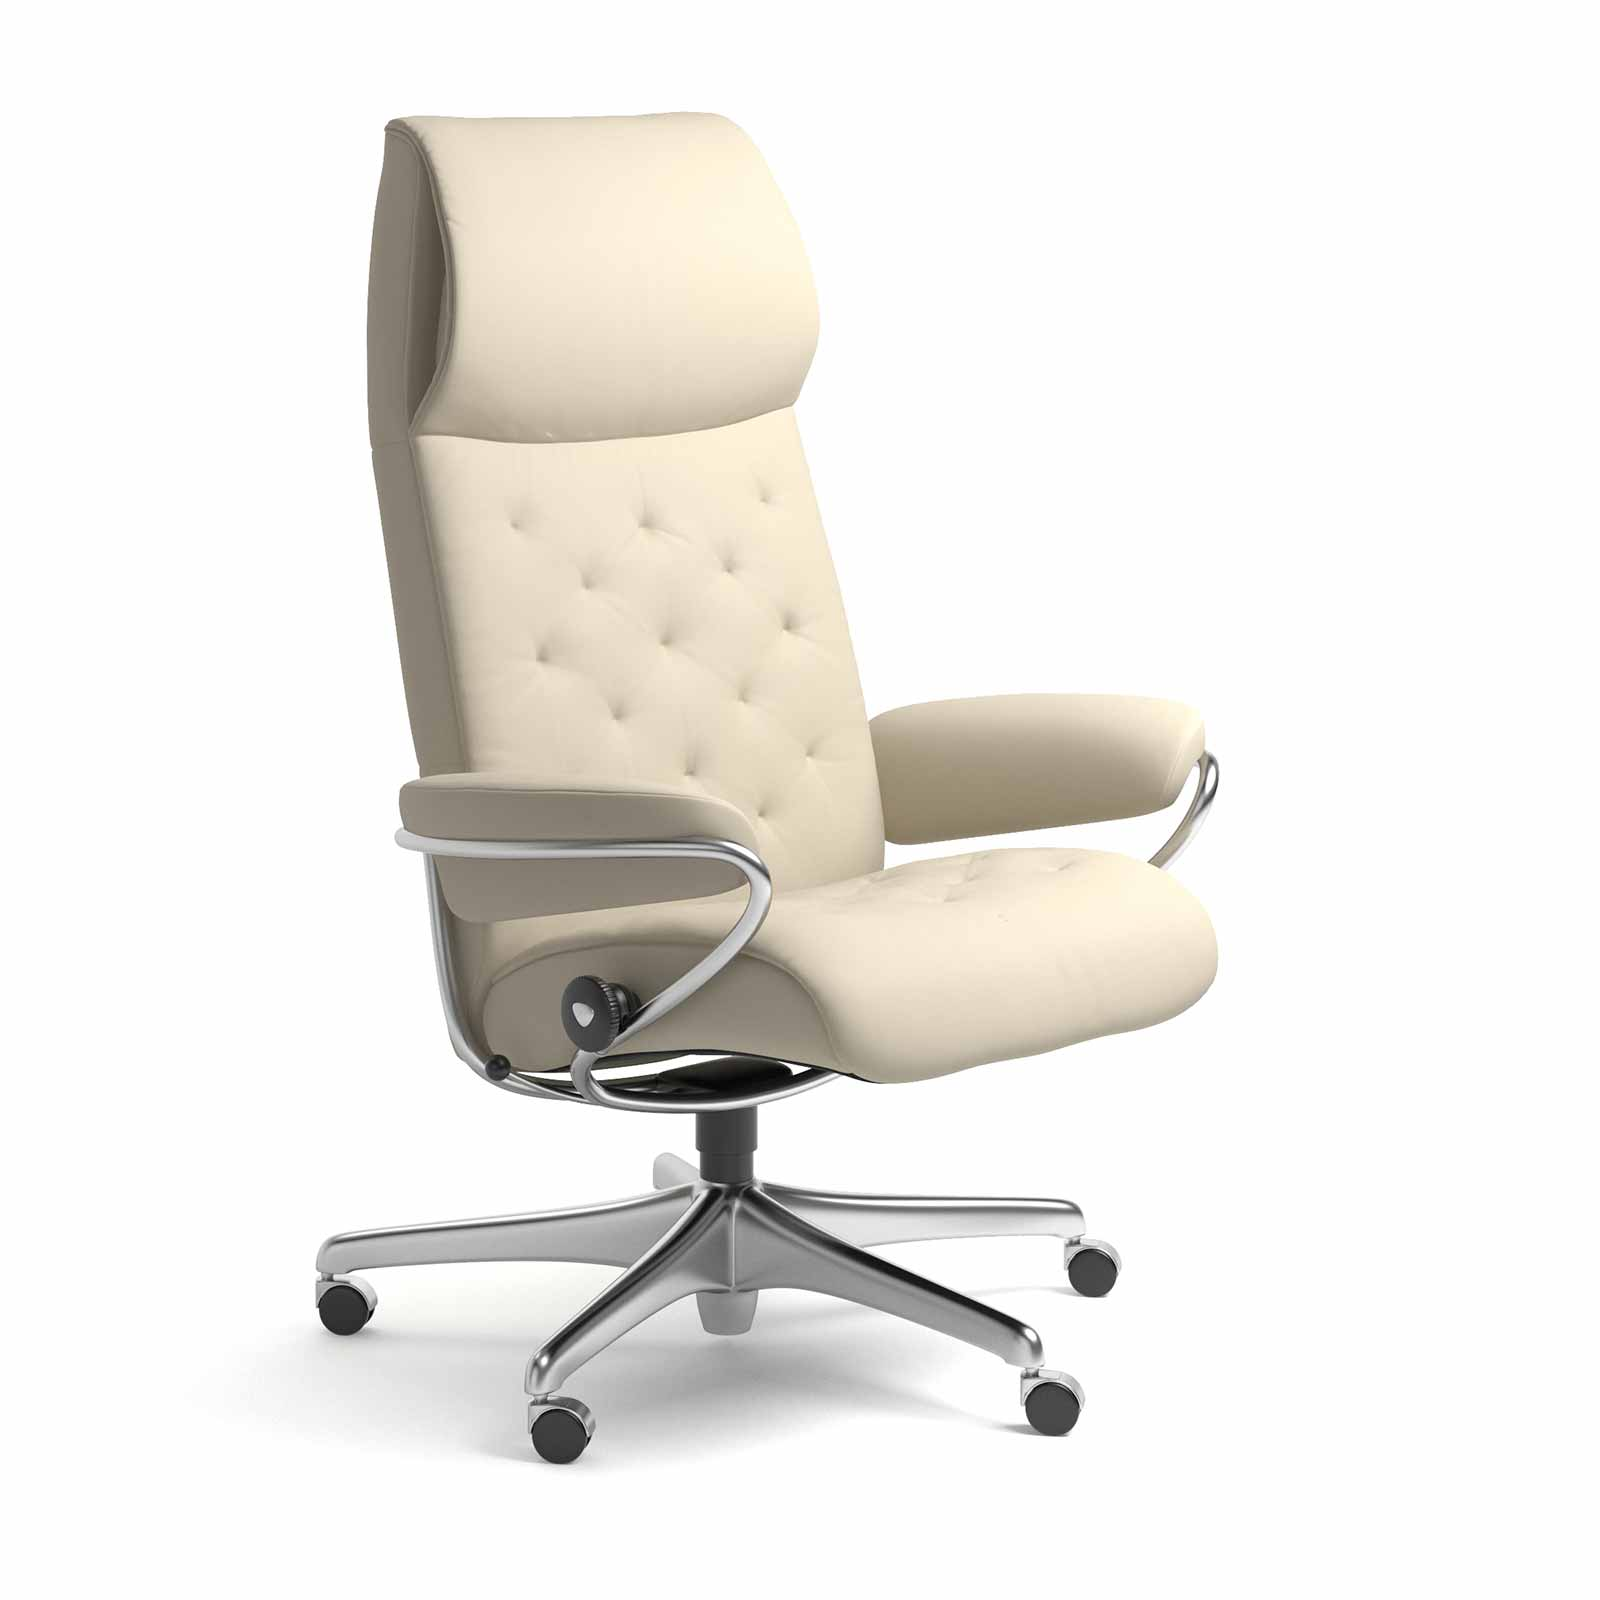 Stressless Sofa Preise Stressless Metro Office High Back